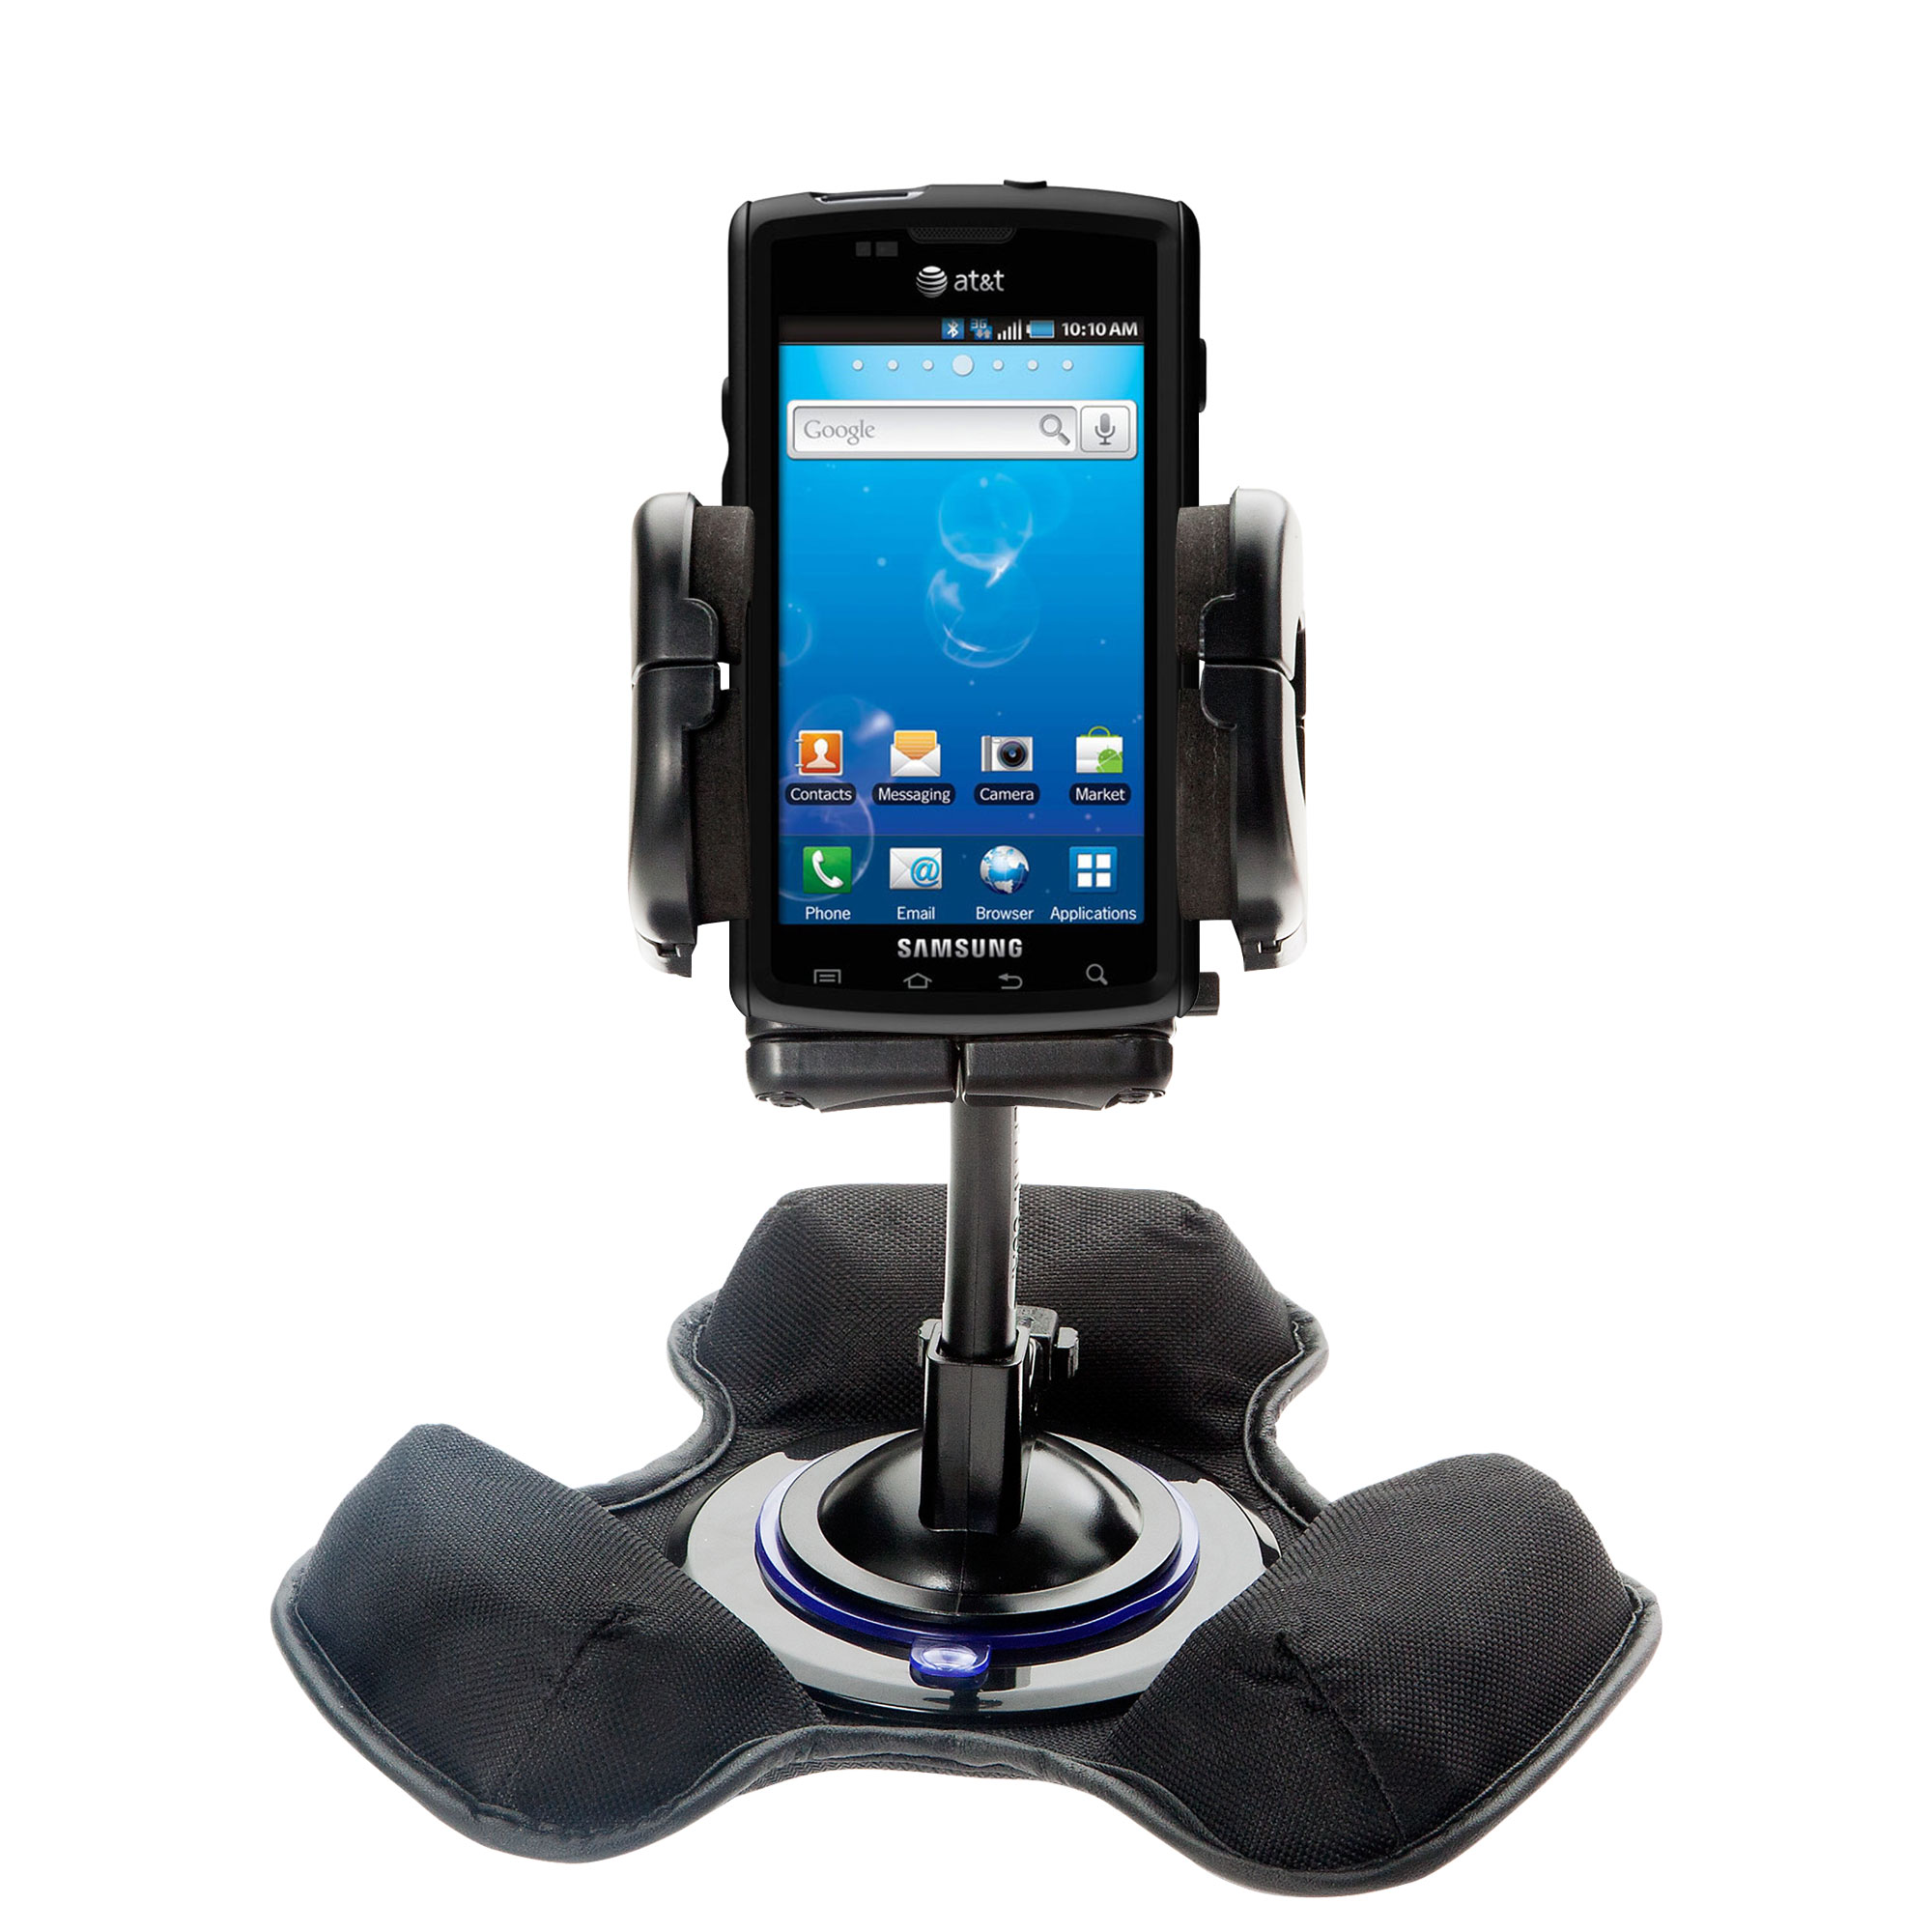 Car / Truck Vehicle Holder Mounting System for Samsung Captivate Includes Unique Flexible Windshield Suction and Universal Dashboard Mount Options